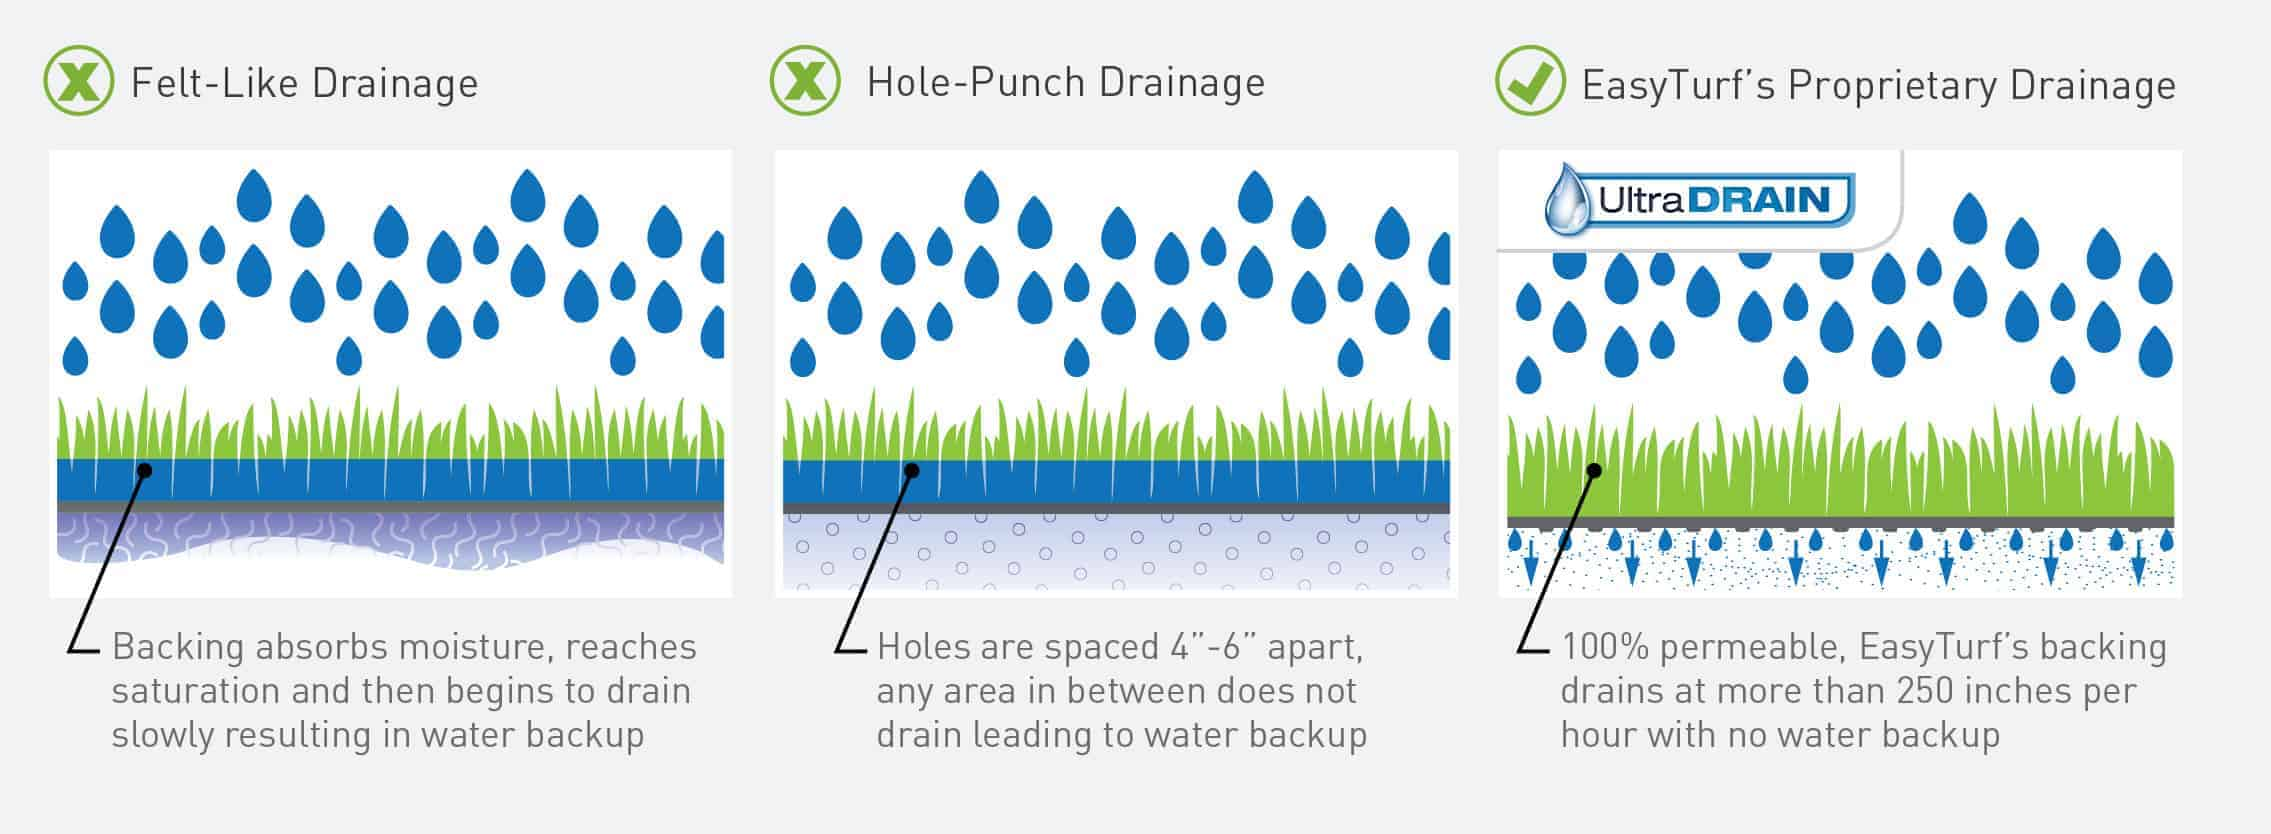 Artificial_Grass_Drainage_Graphic_Differences_EasyTurf_UltimateGrass